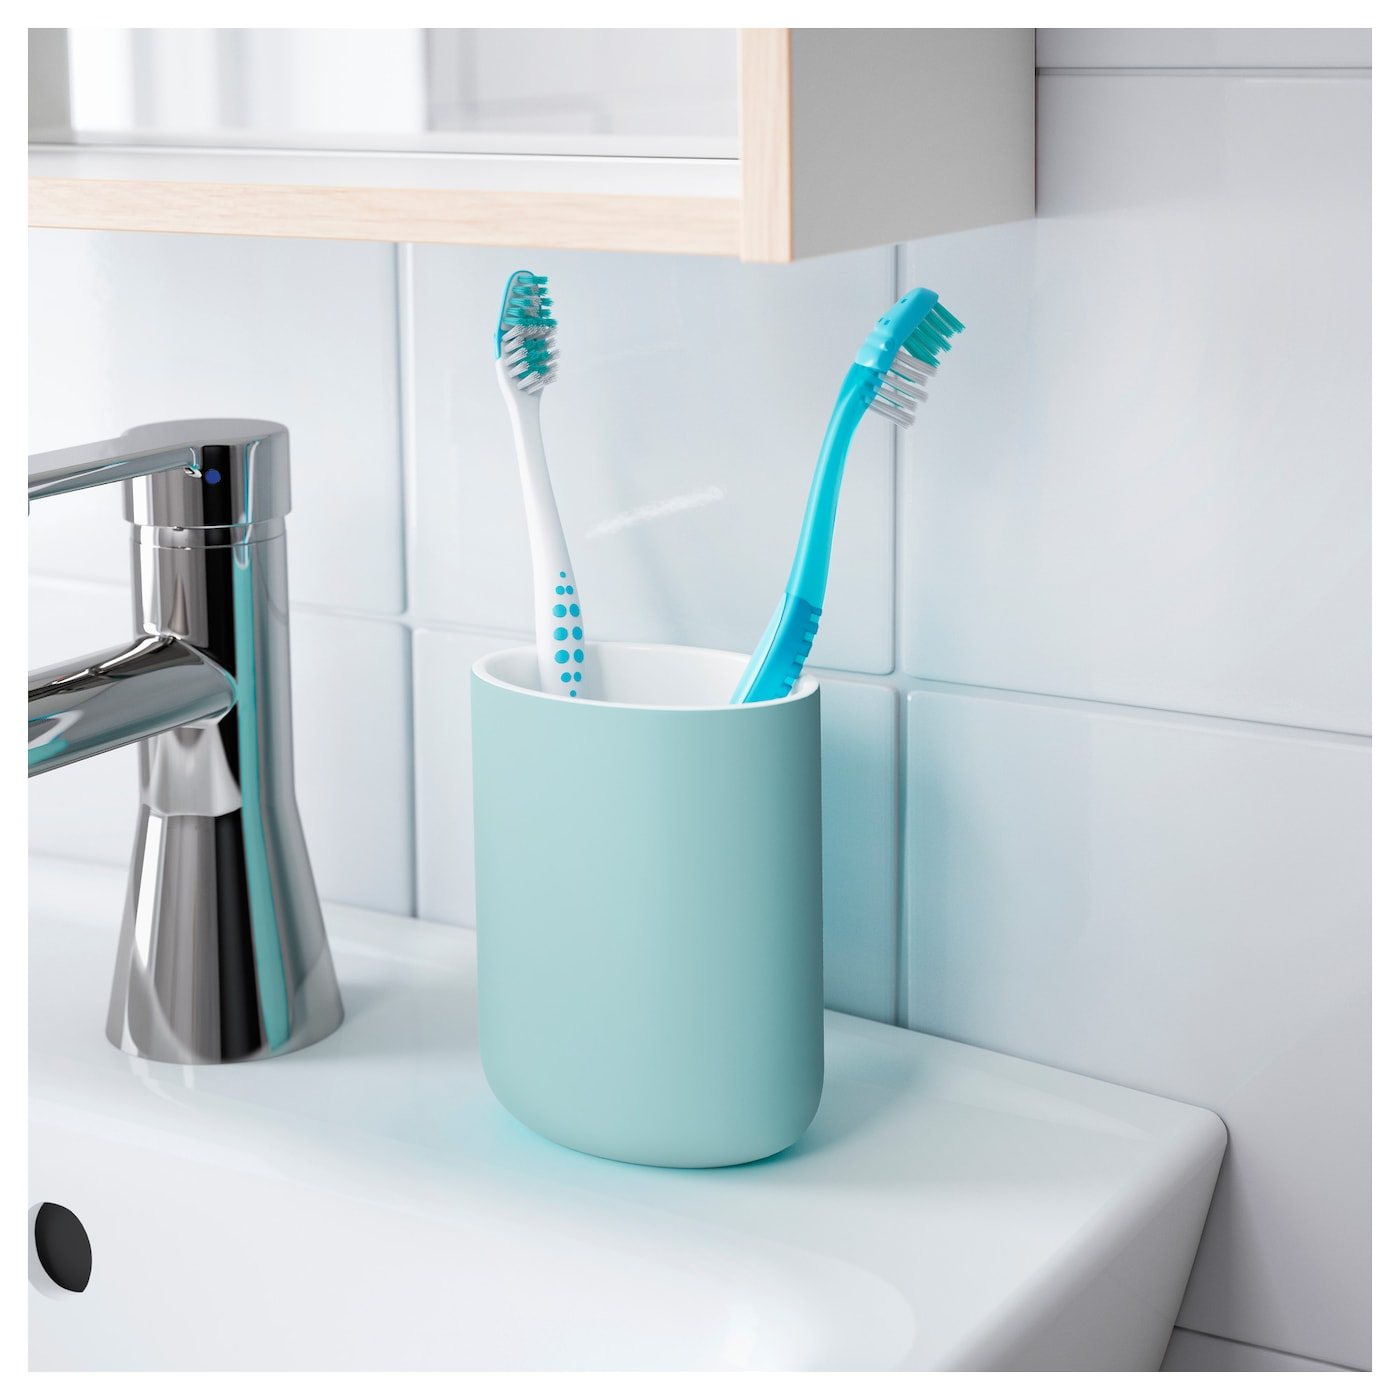 Ekoln toothbrush holder turquoise ikea for Bathroom accessories electric toothbrush holder